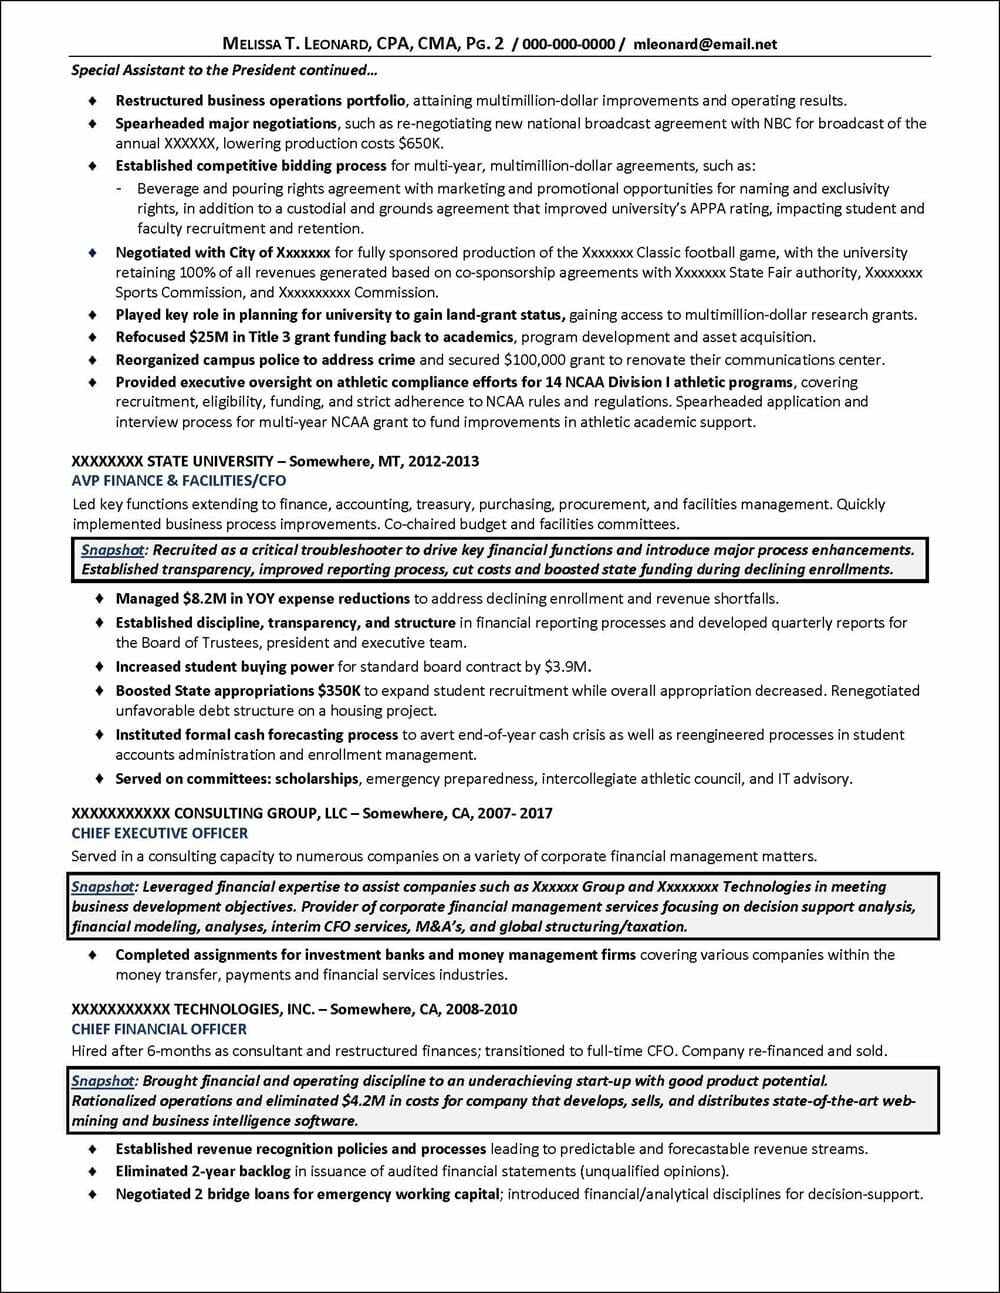 Senior Finance & Operating Executive Resume page 2